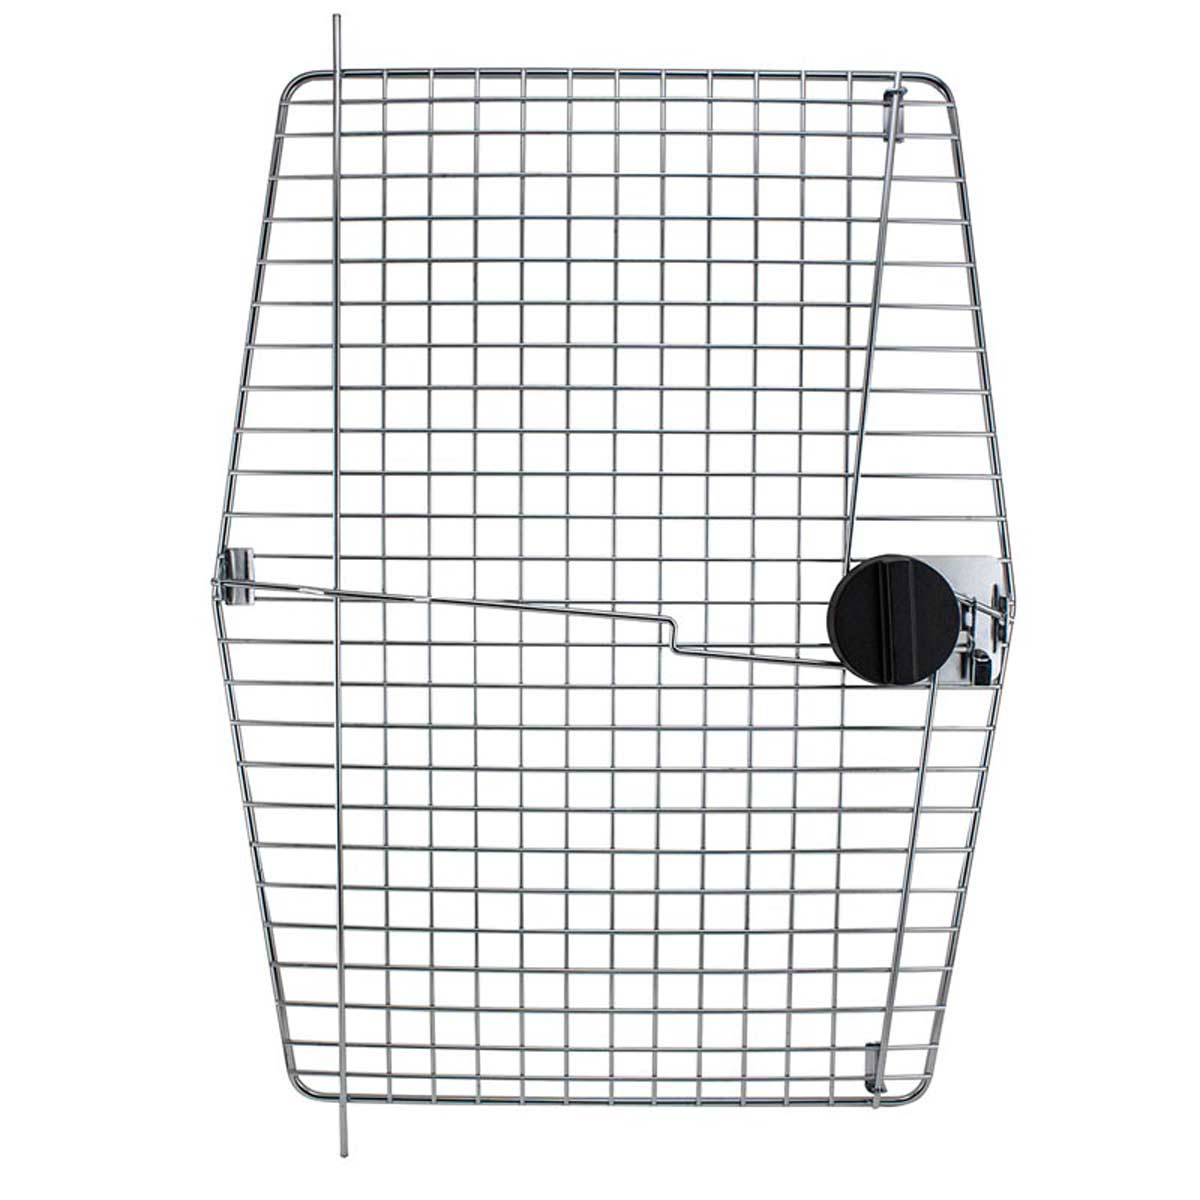 Petmate Vari/Sky Kennel Door - Giant Size - 26 inches (Height) by 20 inches (Width)